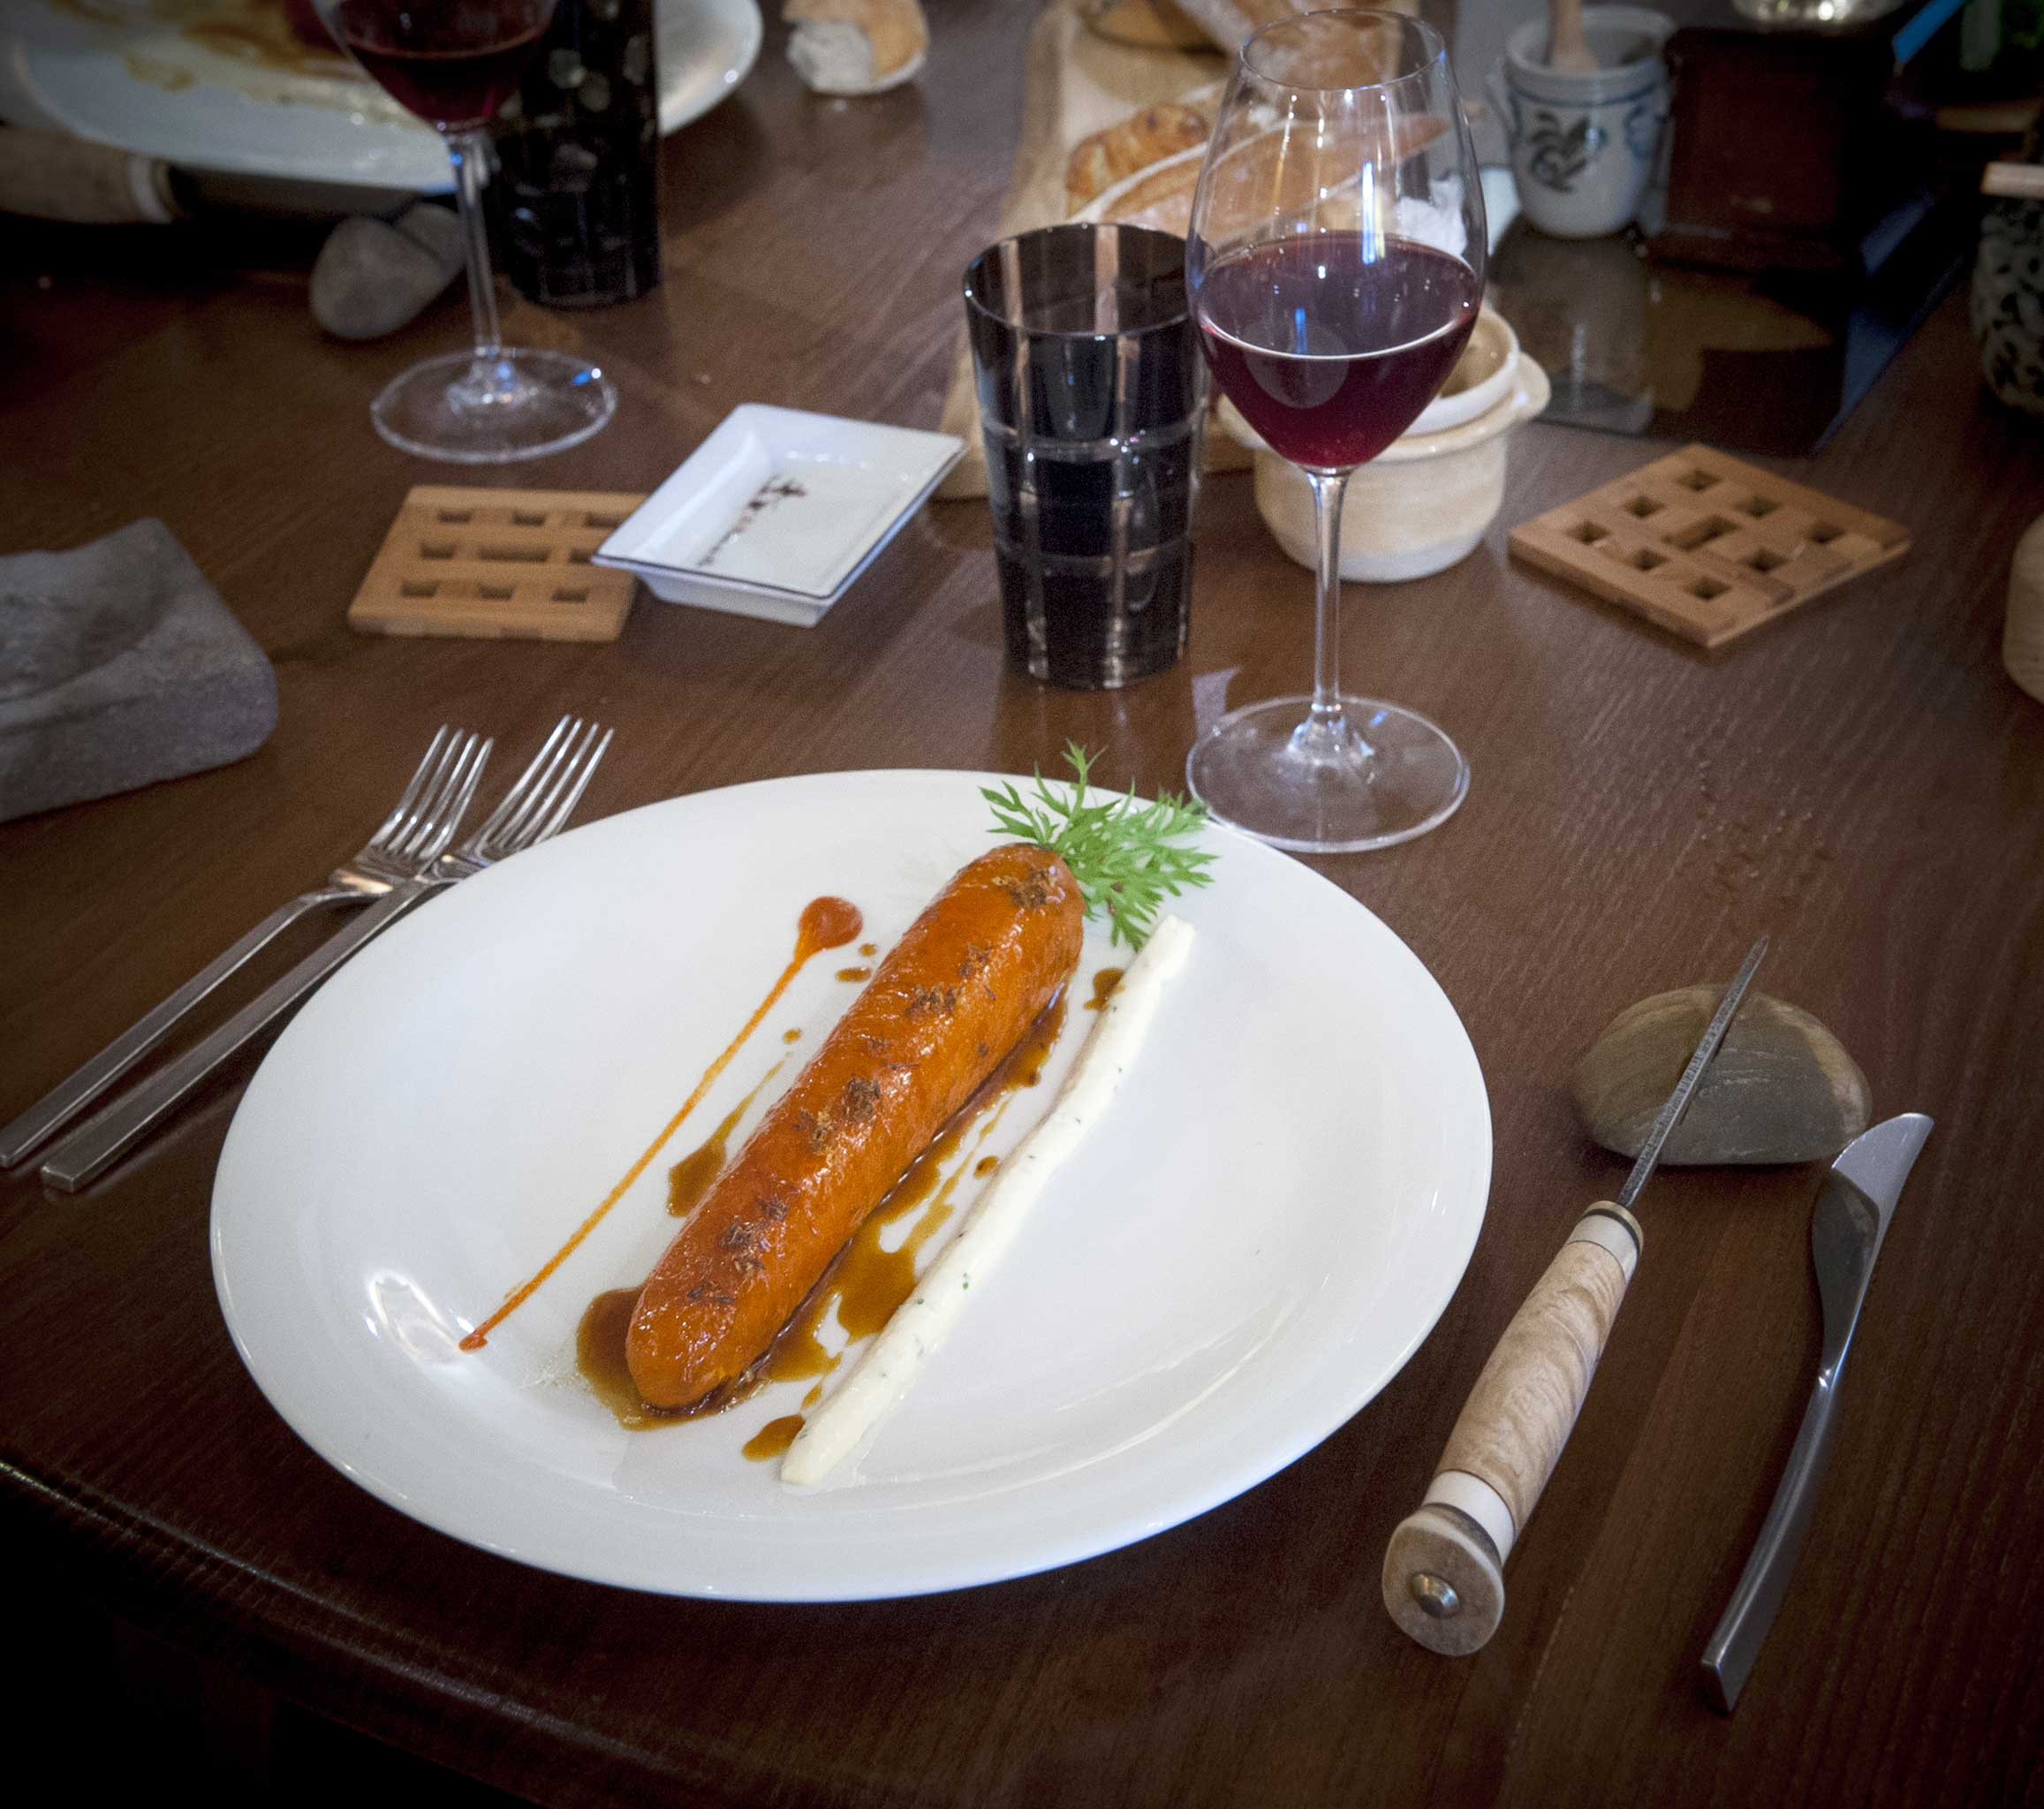 Cuisine Royale Eat Food A Culinary Adventure In Alsace Scream If You Want To Go Faster